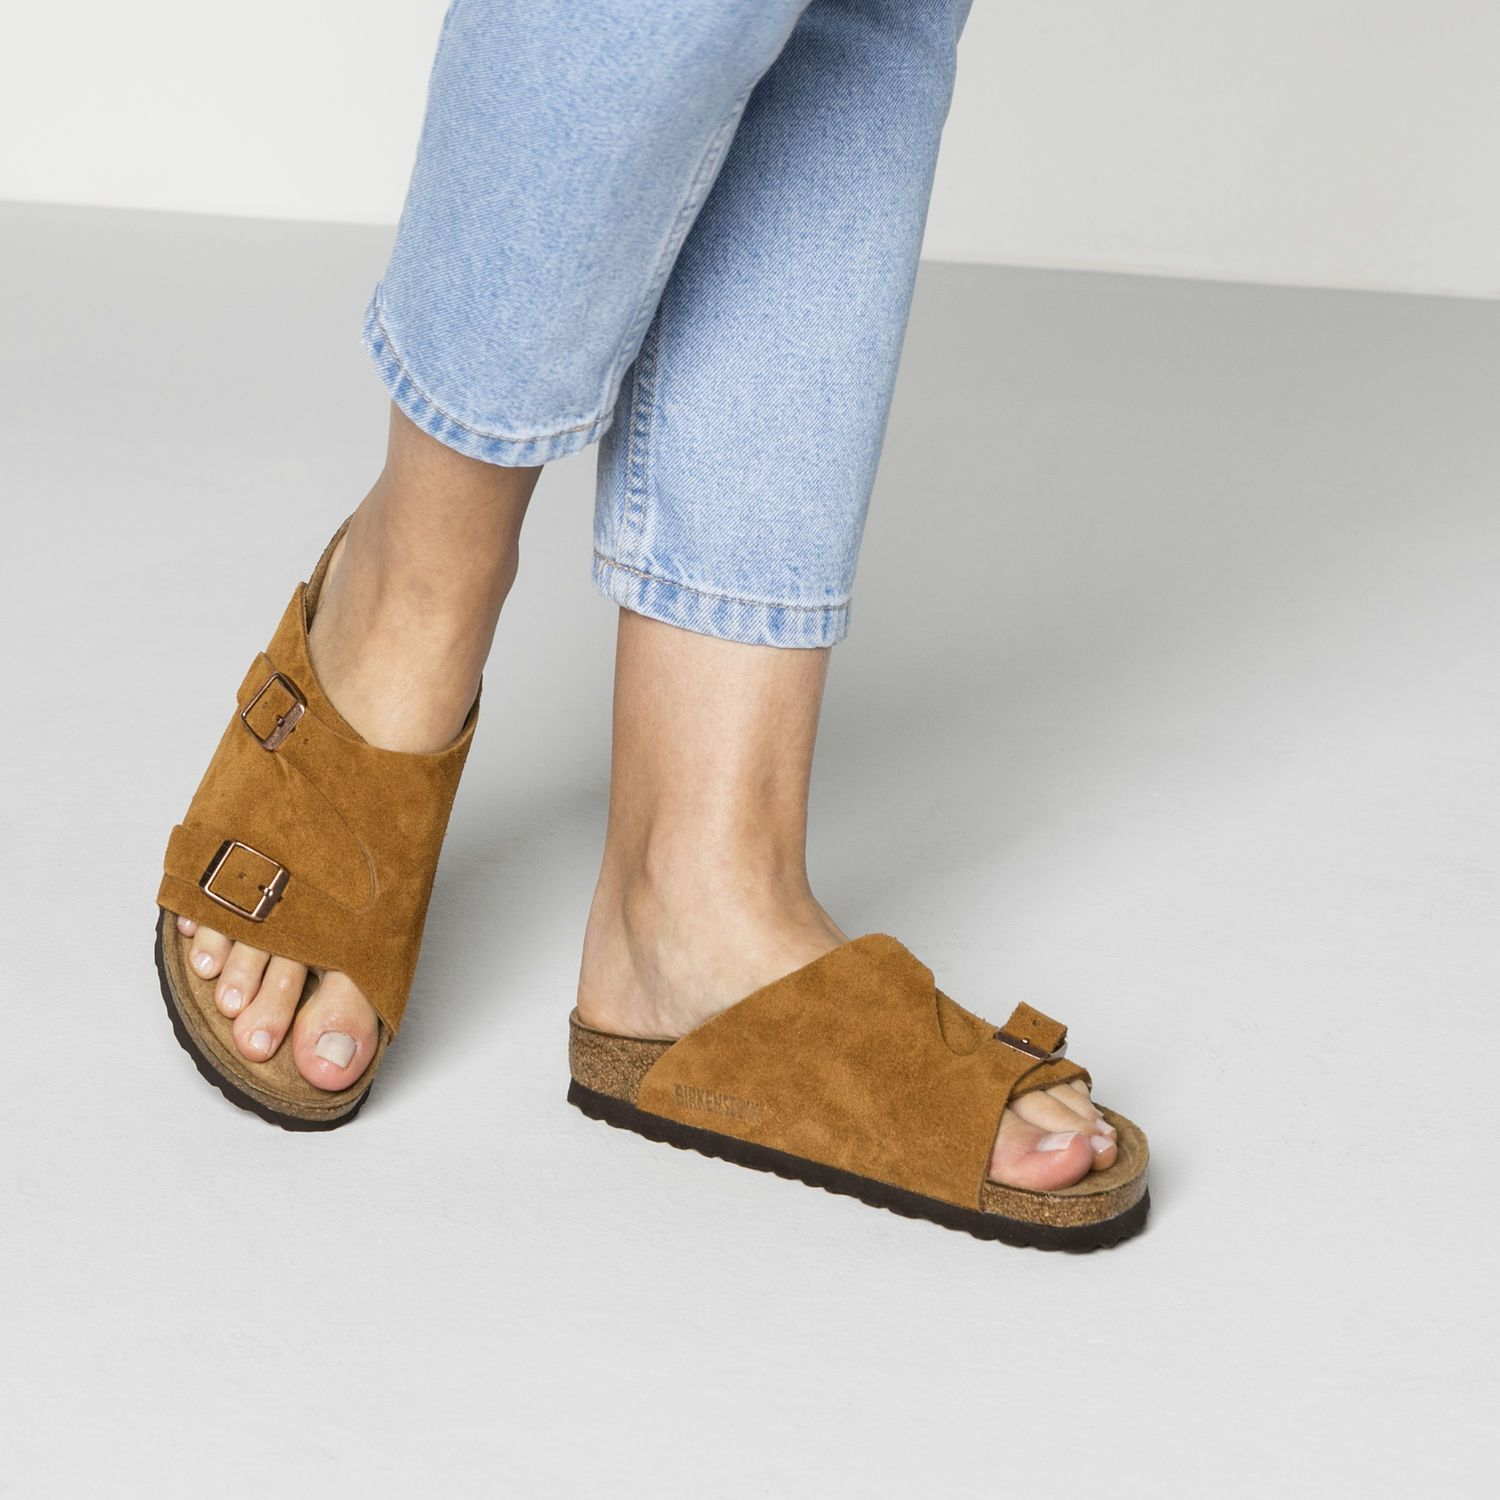 Zürich Suede Leather Soft Footbed | Suede leather, Spring